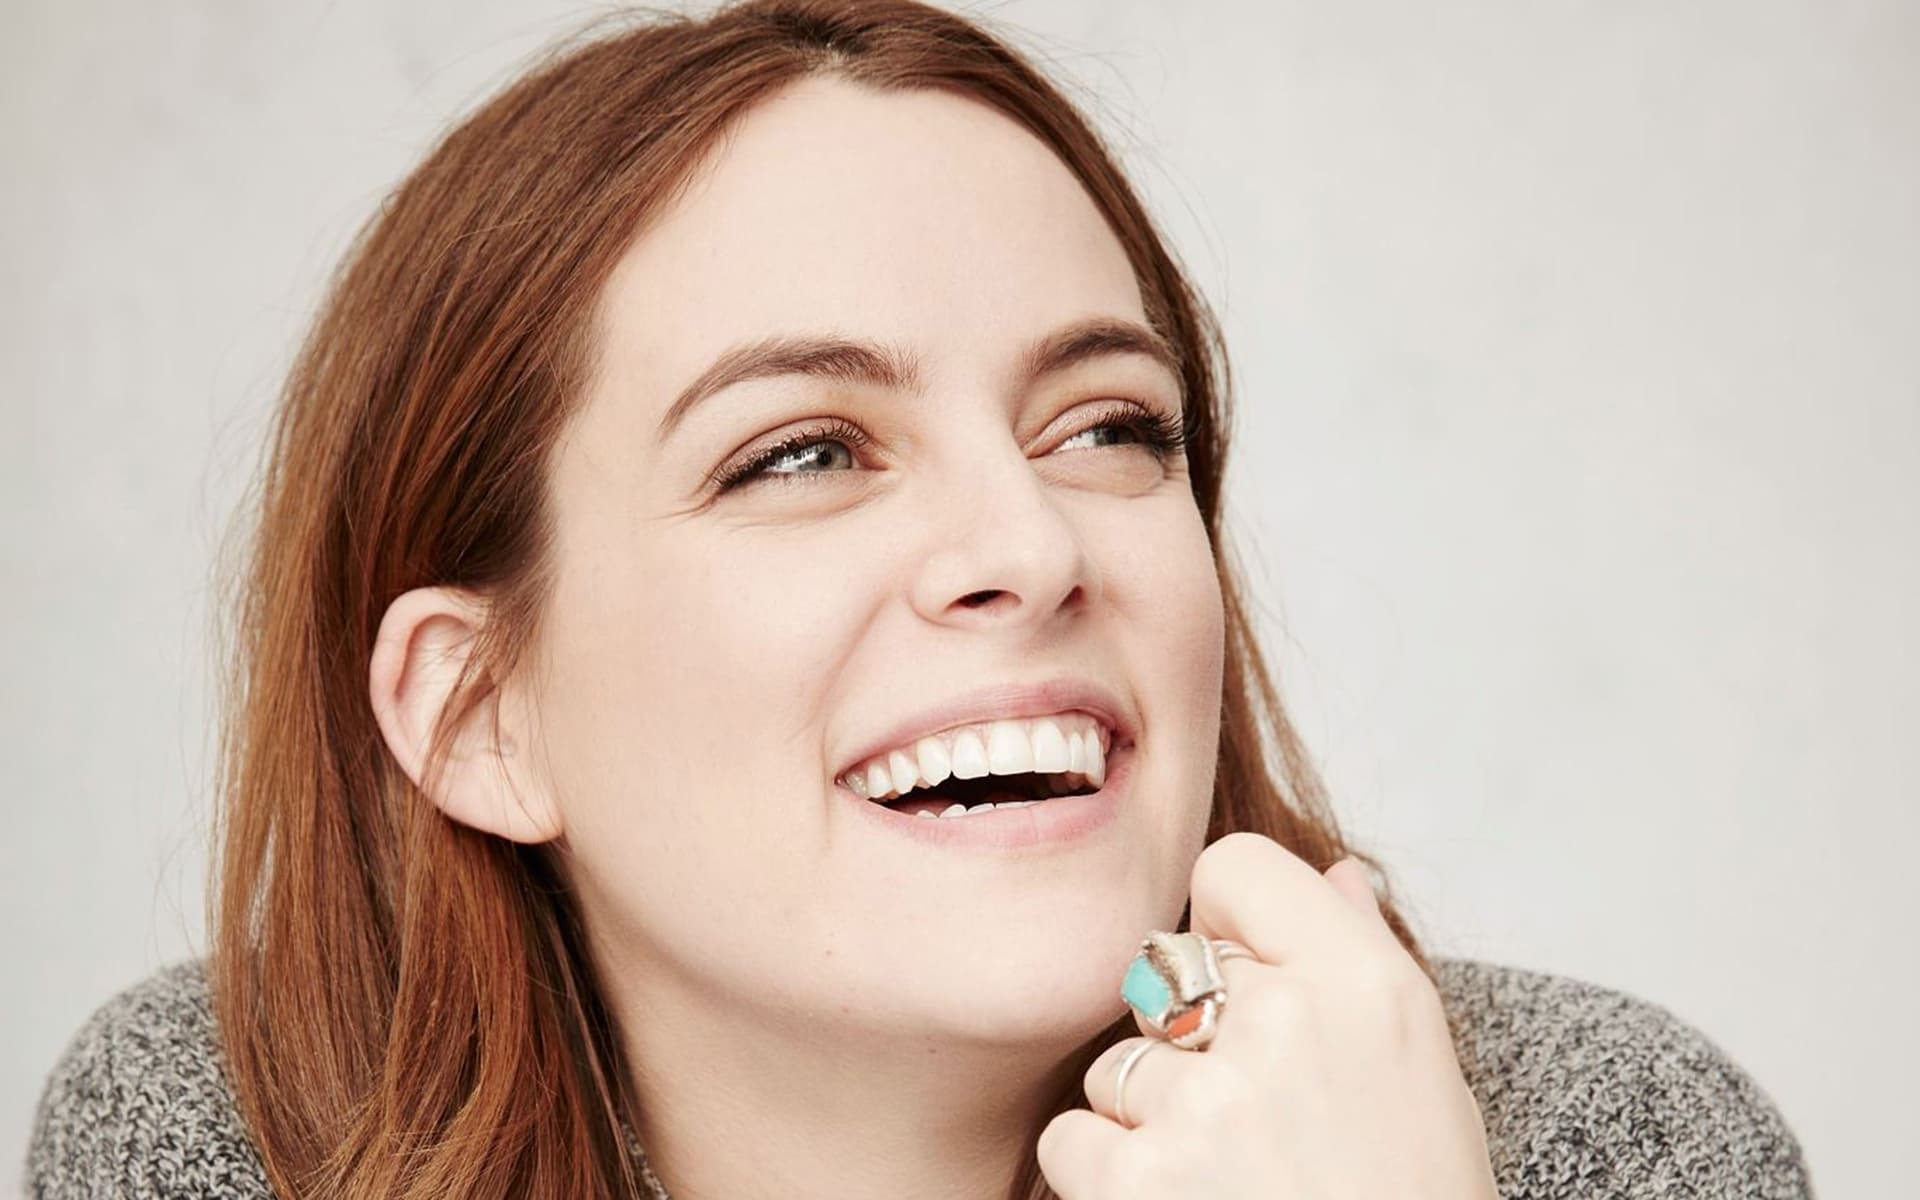 1920x1200 - Riley Keough Wallpapers 4